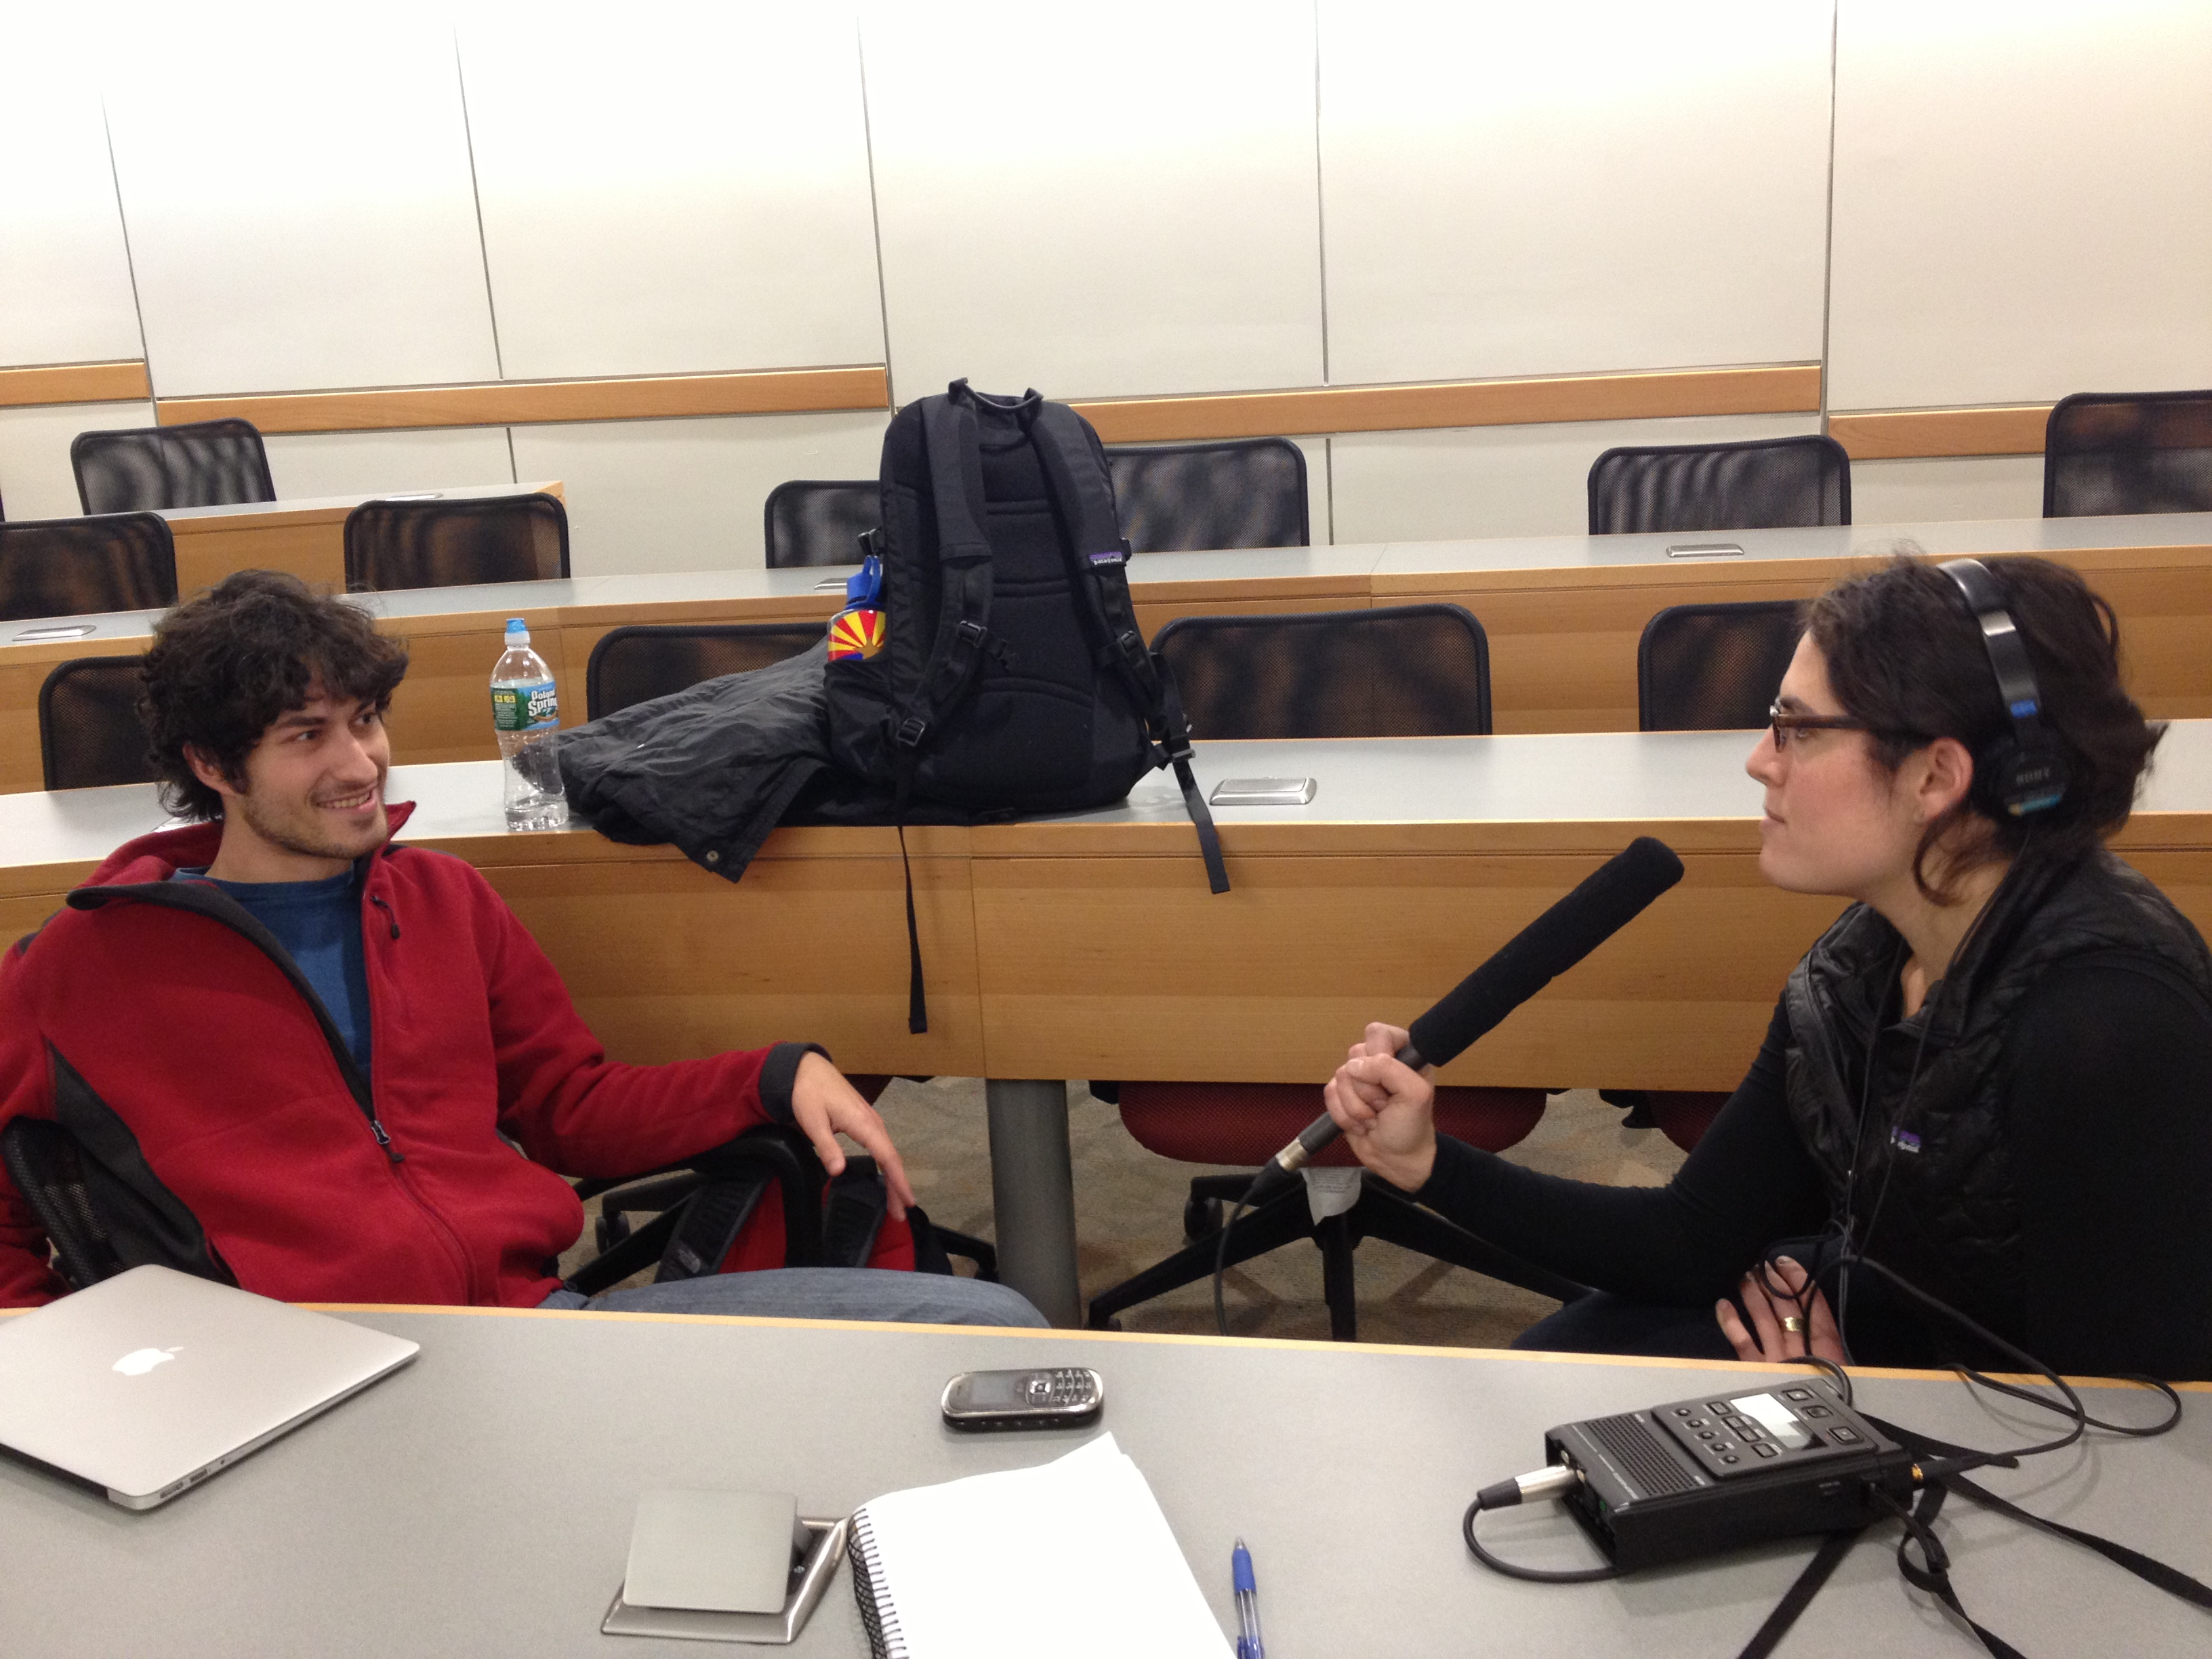 Caption: Second year medical student Sarah Rapoport grabs the mic and interviews fellow student Peter Kaminski., Credit: Kristin Gourlay